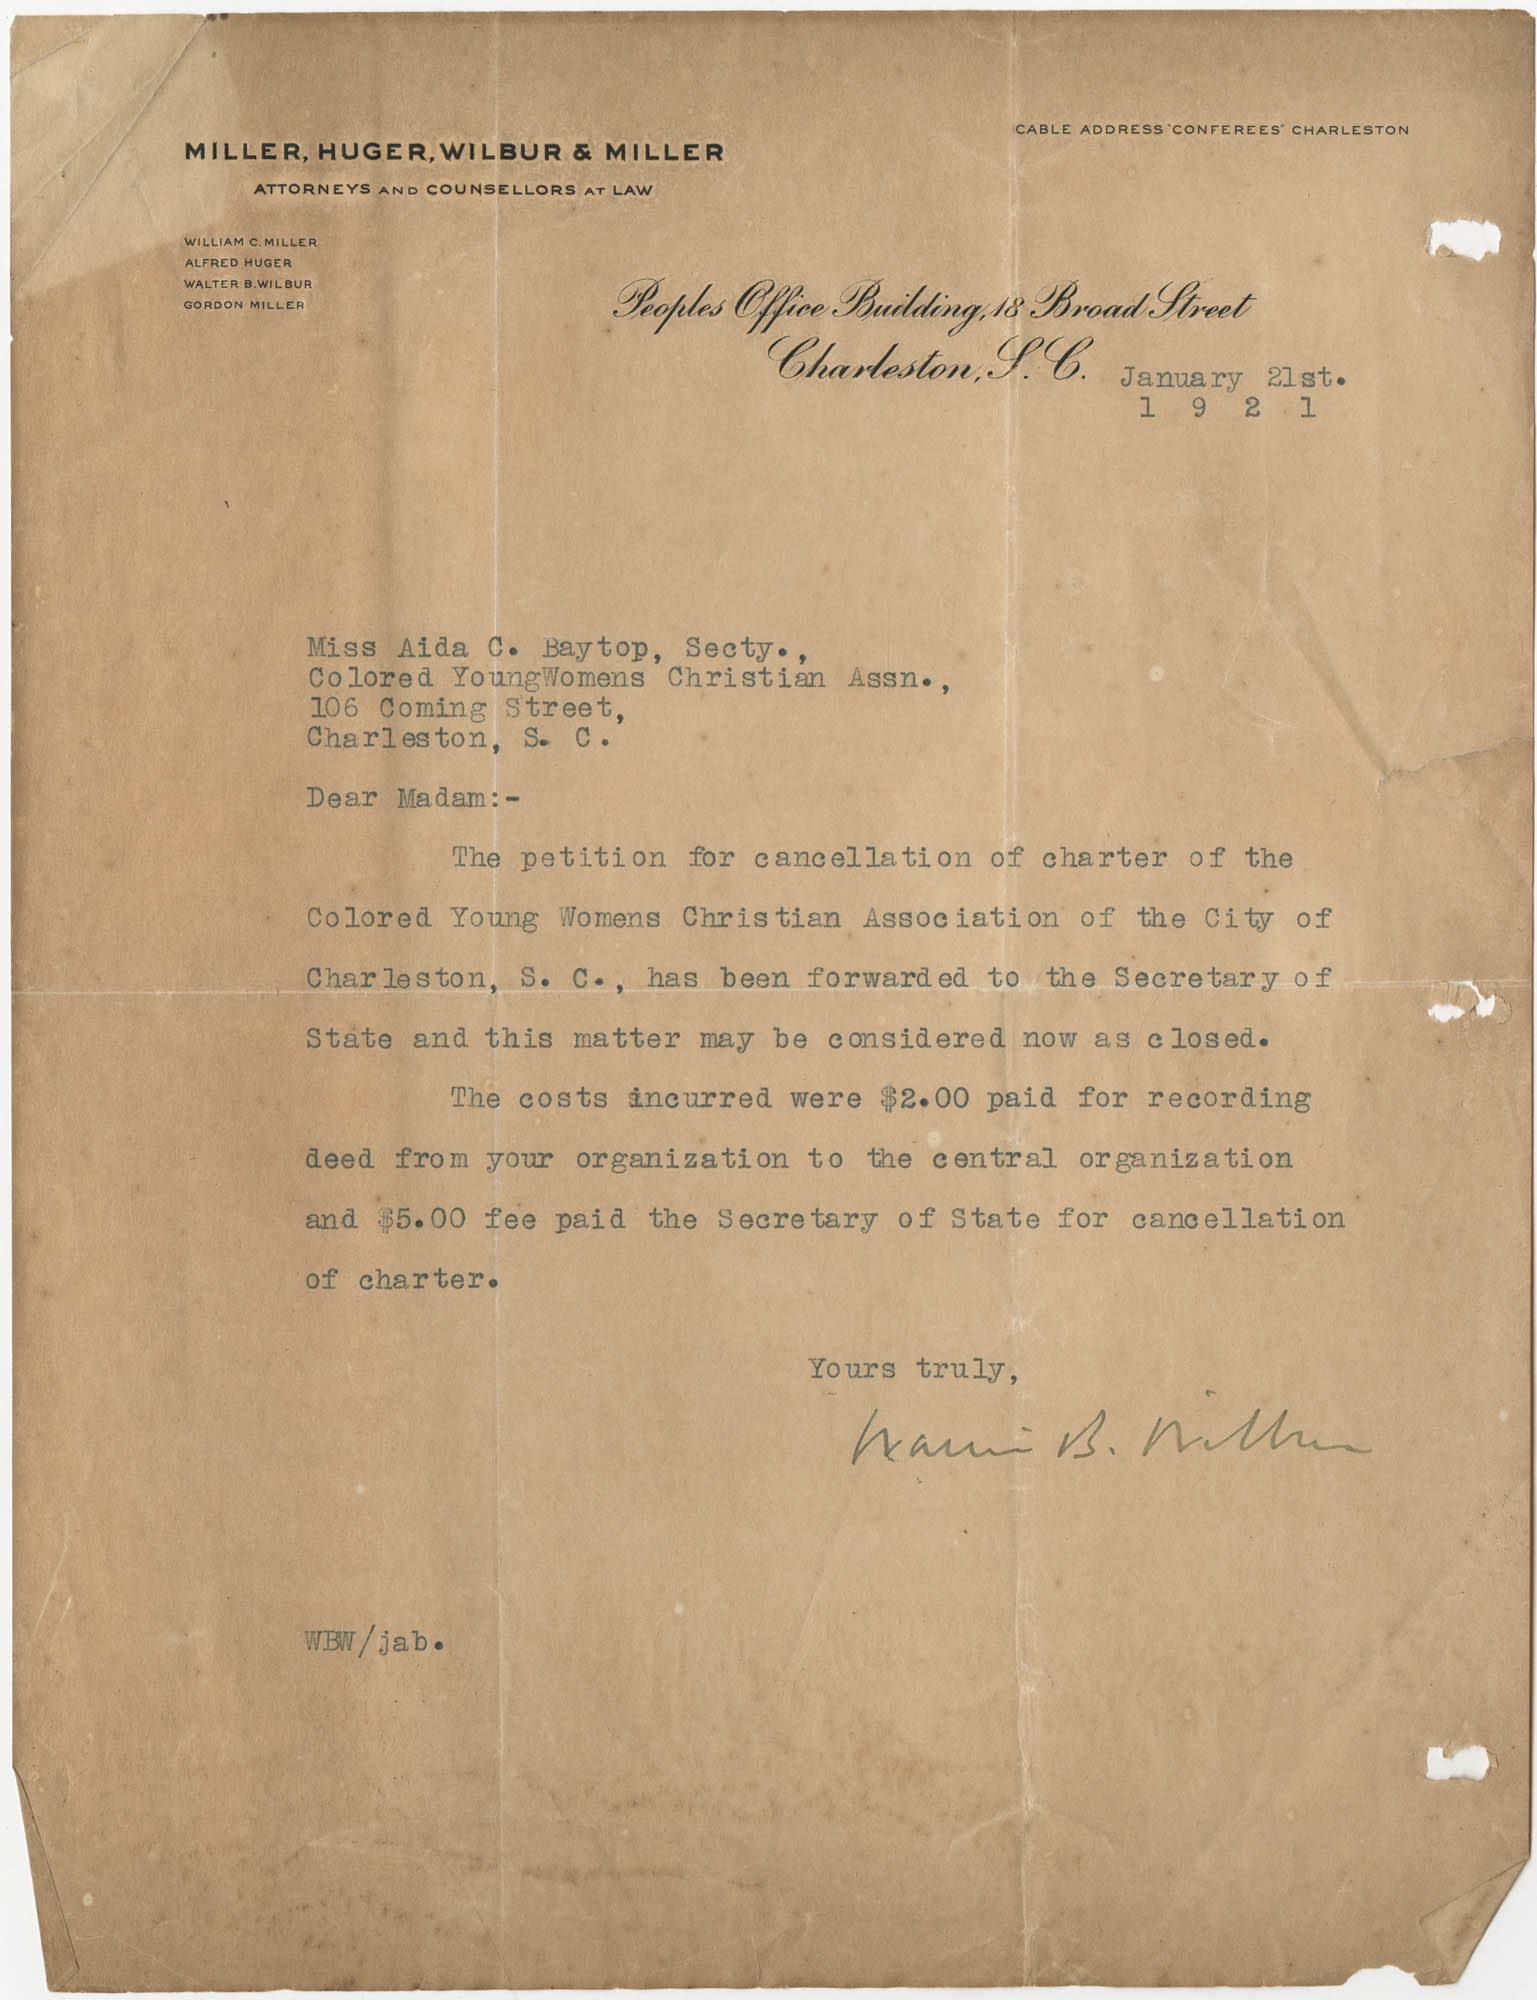 Letter from Walter B. Wilbur to Ada C. Baytop, January 21, 1921